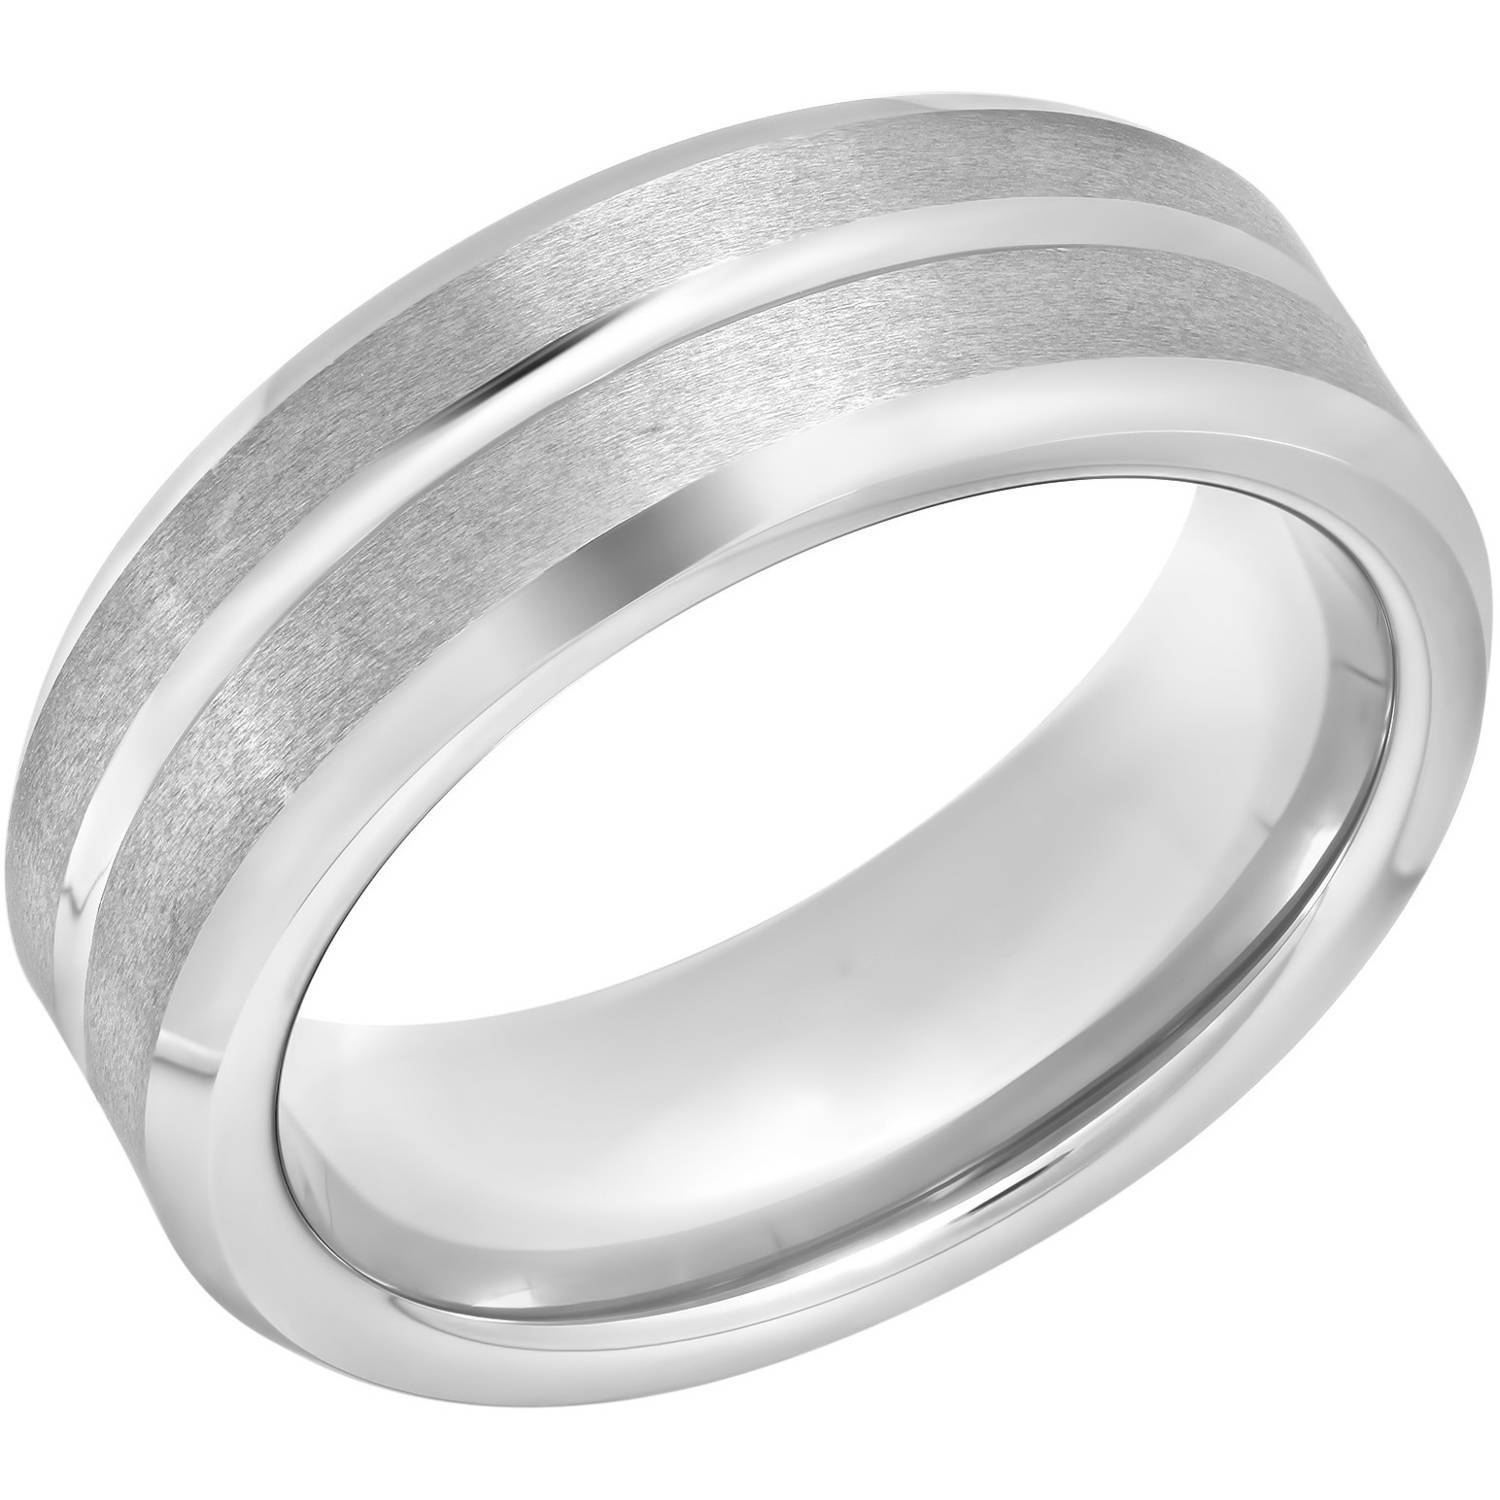 Men's Tungsten 8mm Satin And High Polish Grooved Wedding Band Regarding Walmart Jewelry Men's Wedding Bands (View 15 of 15)